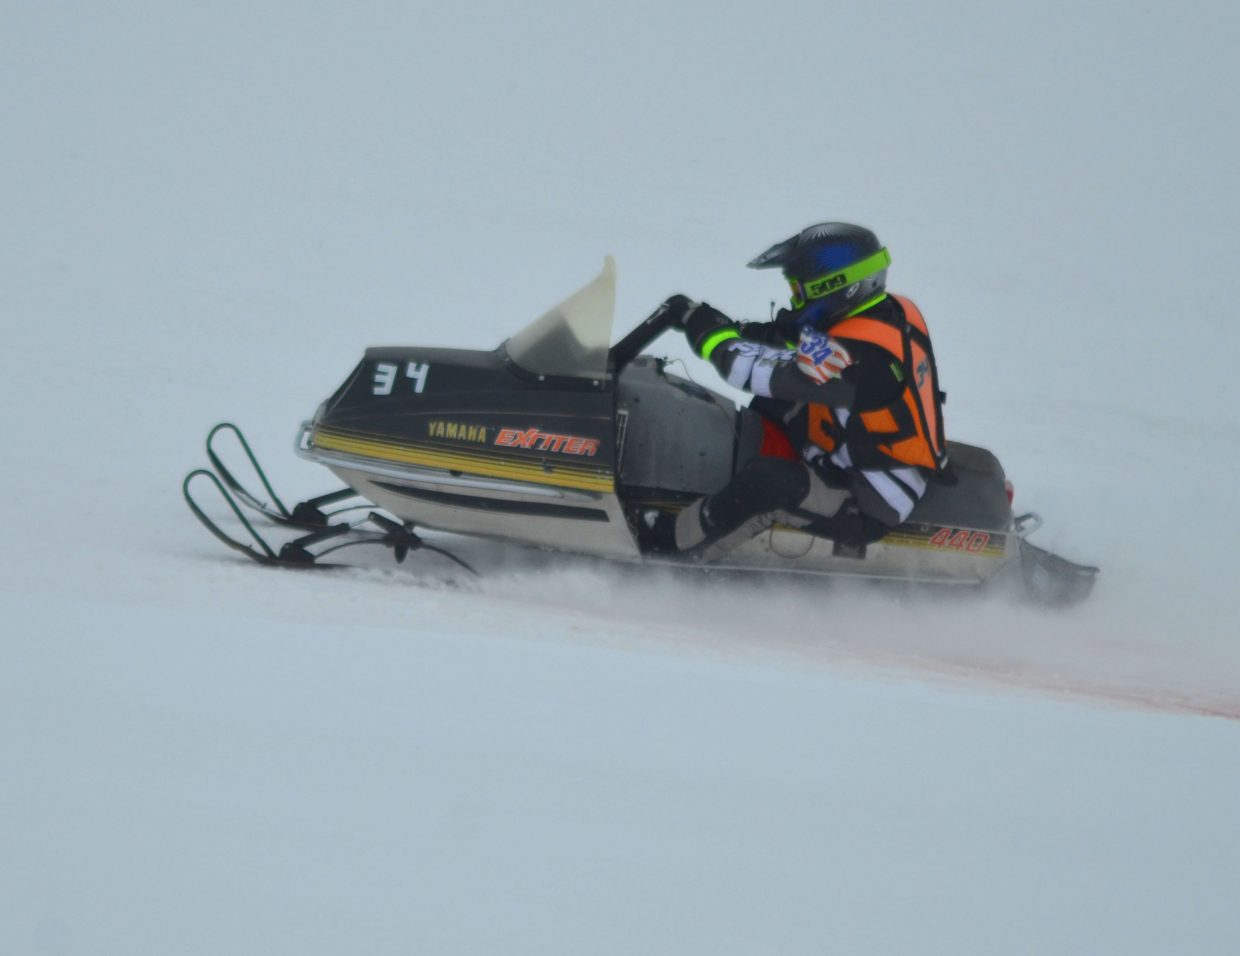 Craig's Phil Vallem kicks up powder along the track at Hayden Speedway during Saturday's Vintage & Classic Oval Snowmobile Racing.